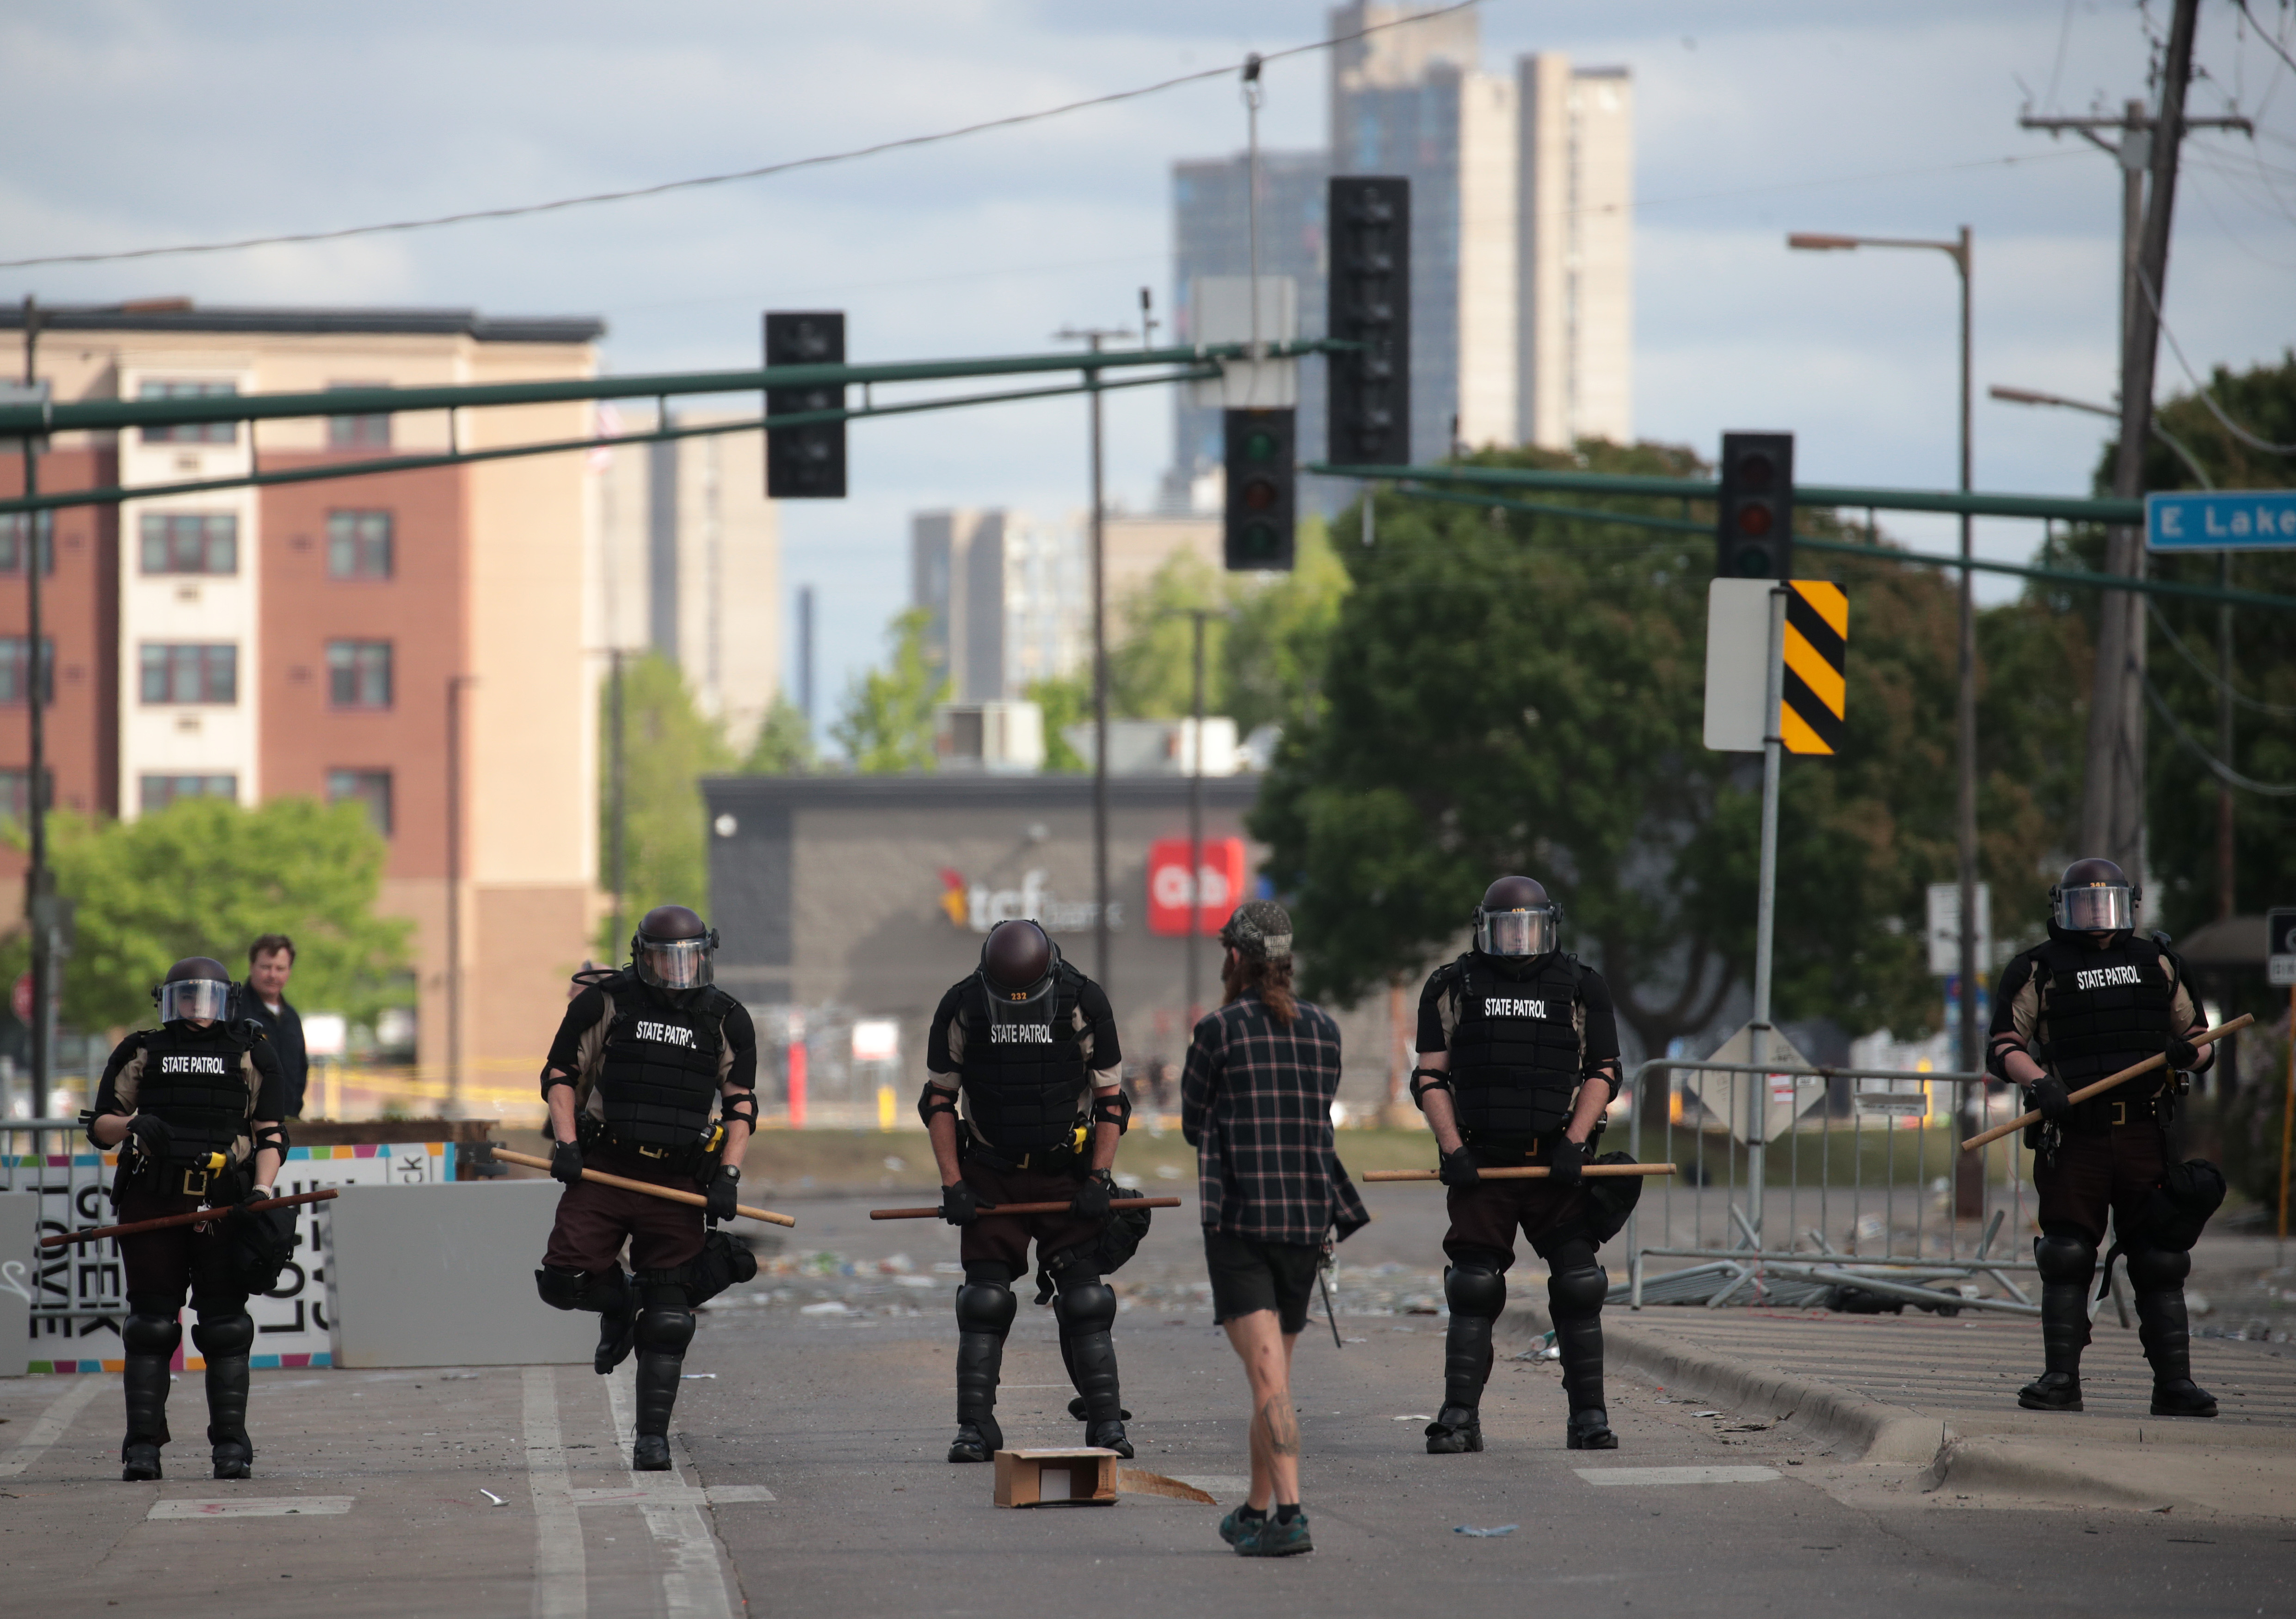 MINNEAPOLIS, MINNESOTA - MAY 29: A man approaches a police line after a night of protests and violence on May 29, 2020 in Minneapolis, Minnesota. The National Guard has been activated as protests continue after the death of George Floyd which has caused widespread destruction and fires across Minneapolis and St. Paul. (Photo by Scott Olson/Getty Images)